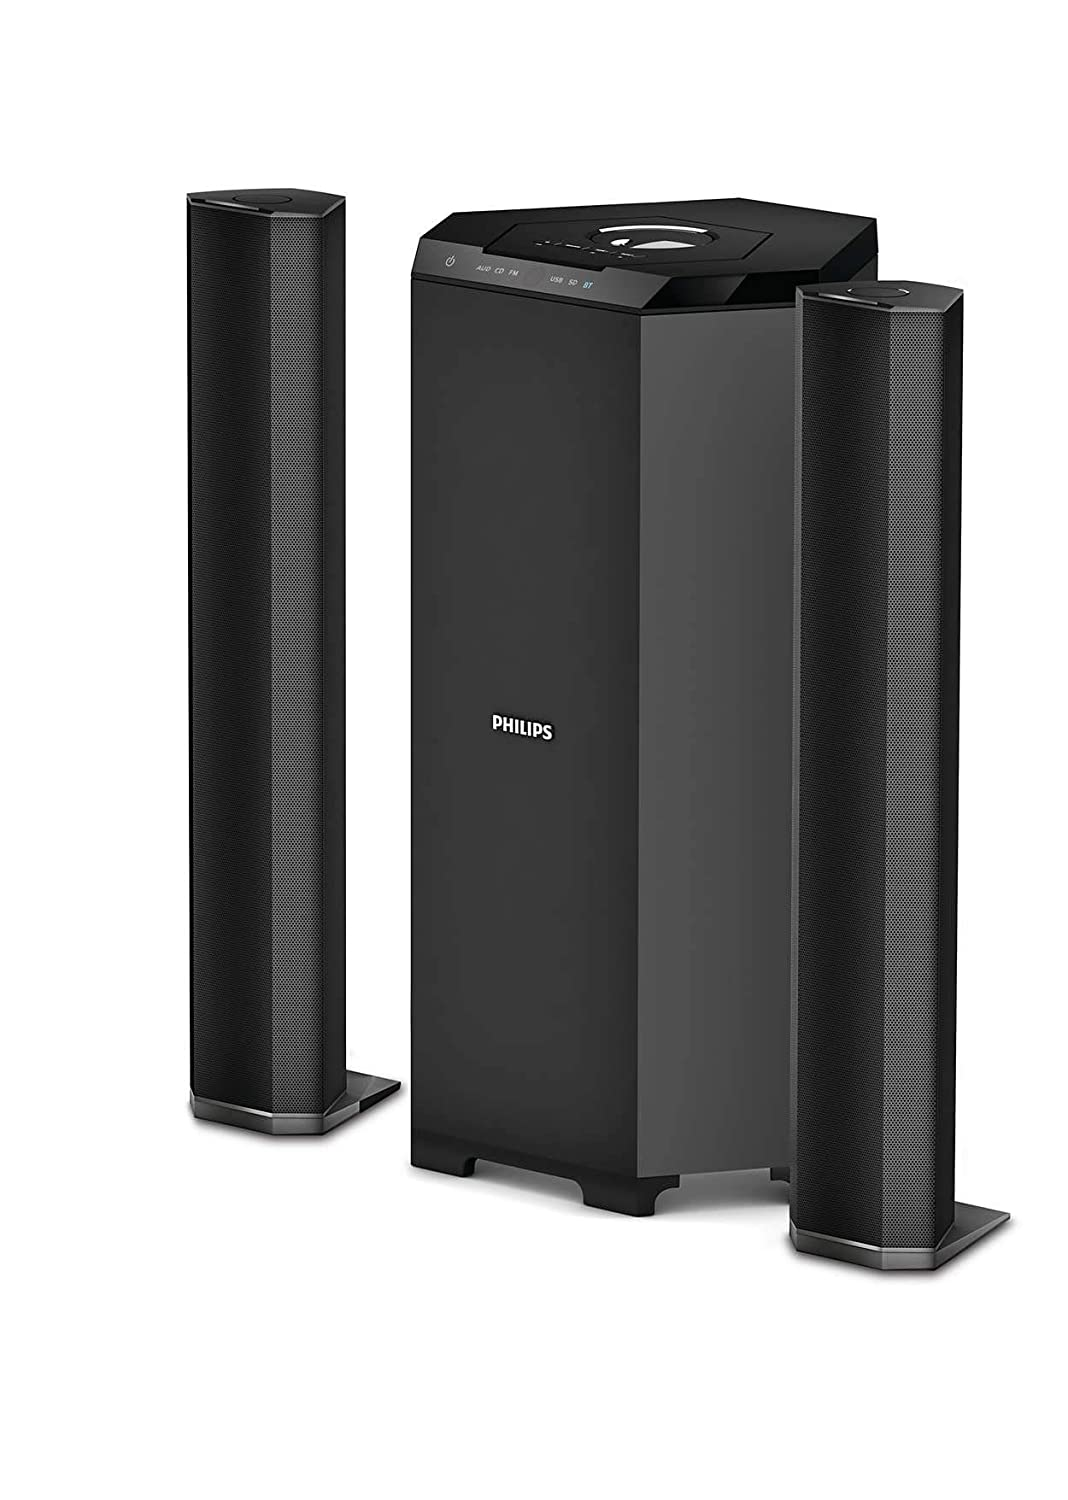 Philips MMS8085B/94 2.1 Channel Convertible Multimedia Speaker System